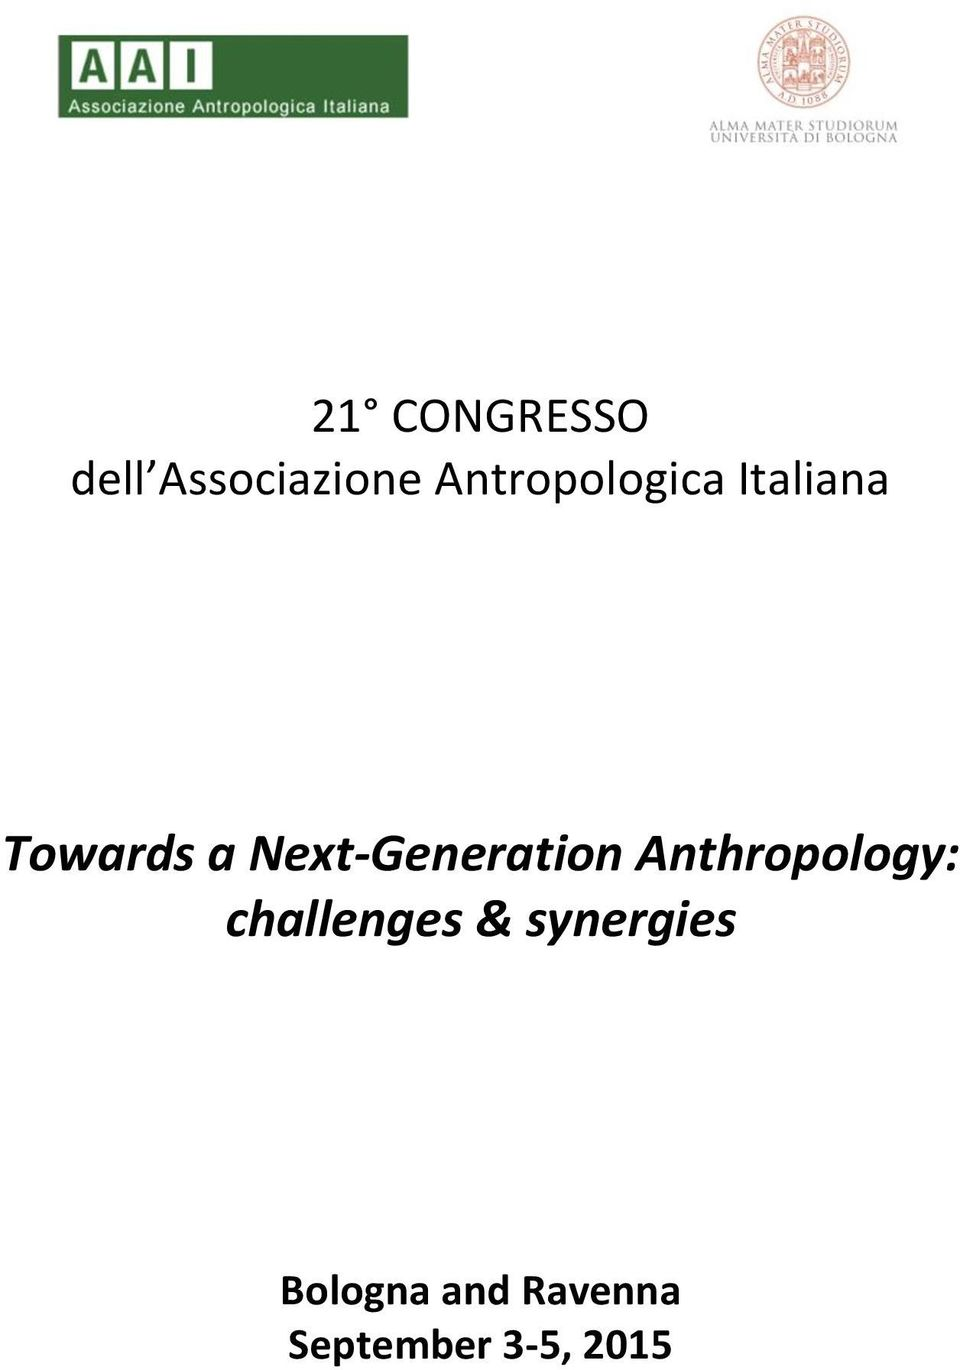 Next-Generation Anthropology: